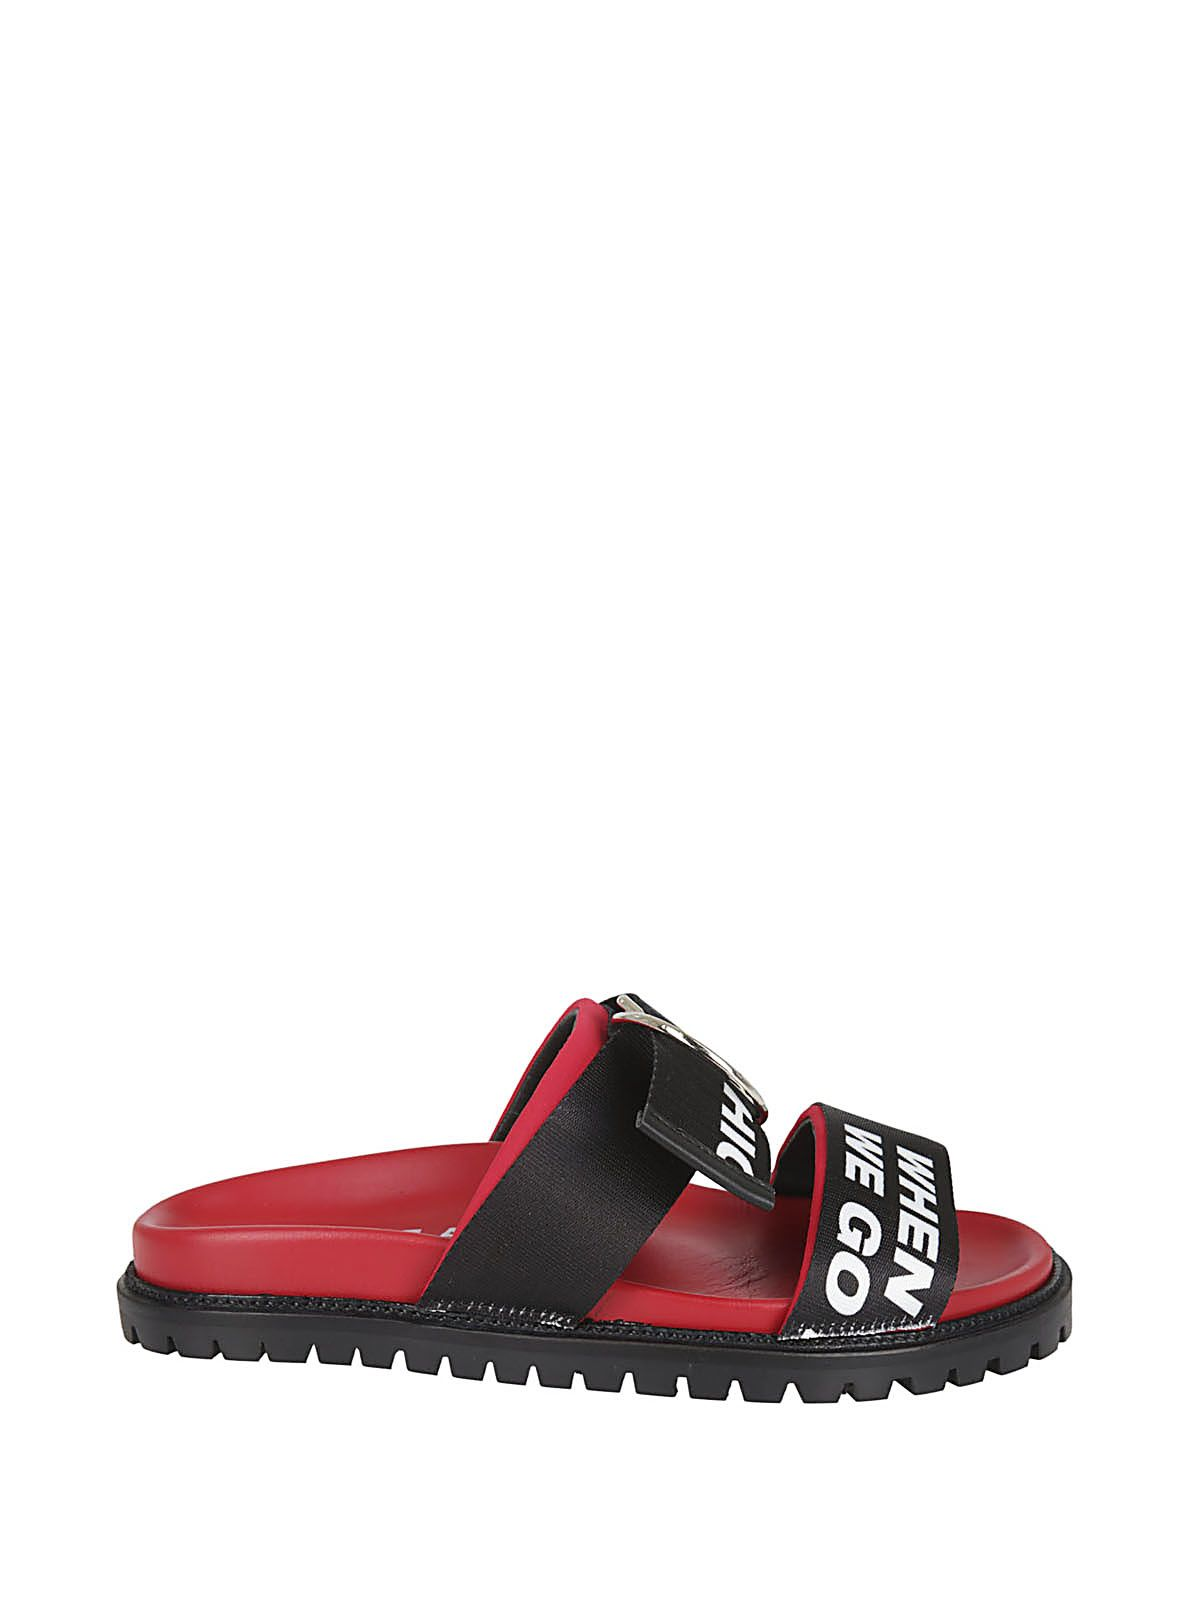 Joshua Sanders Buckle Strap Sliders